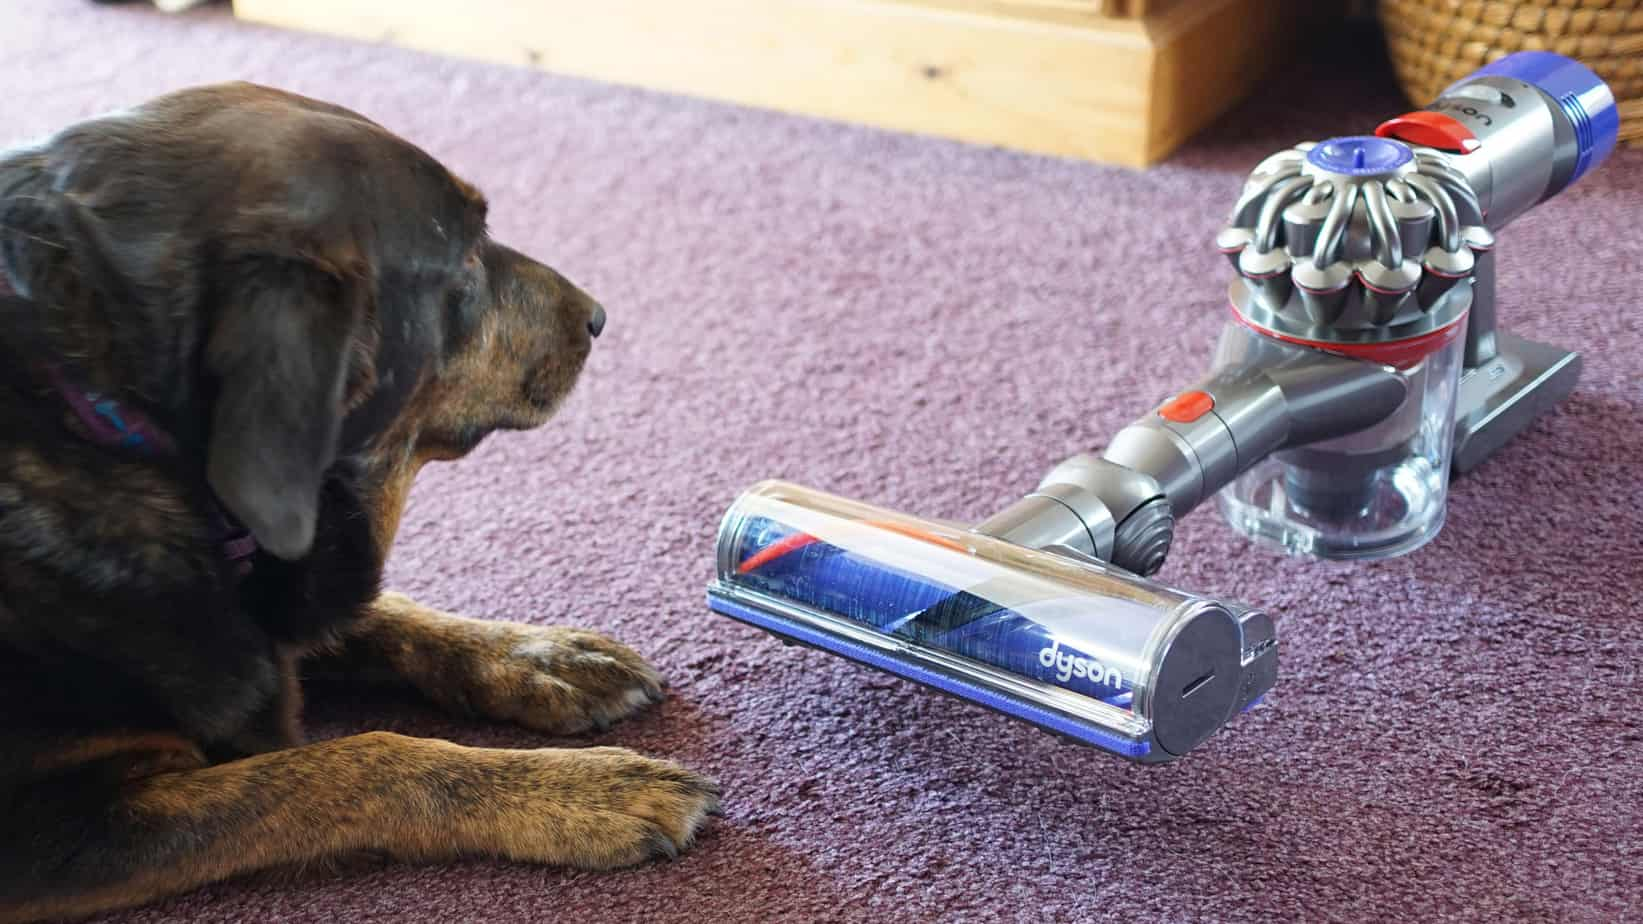 v8 Pet Hair cleaning